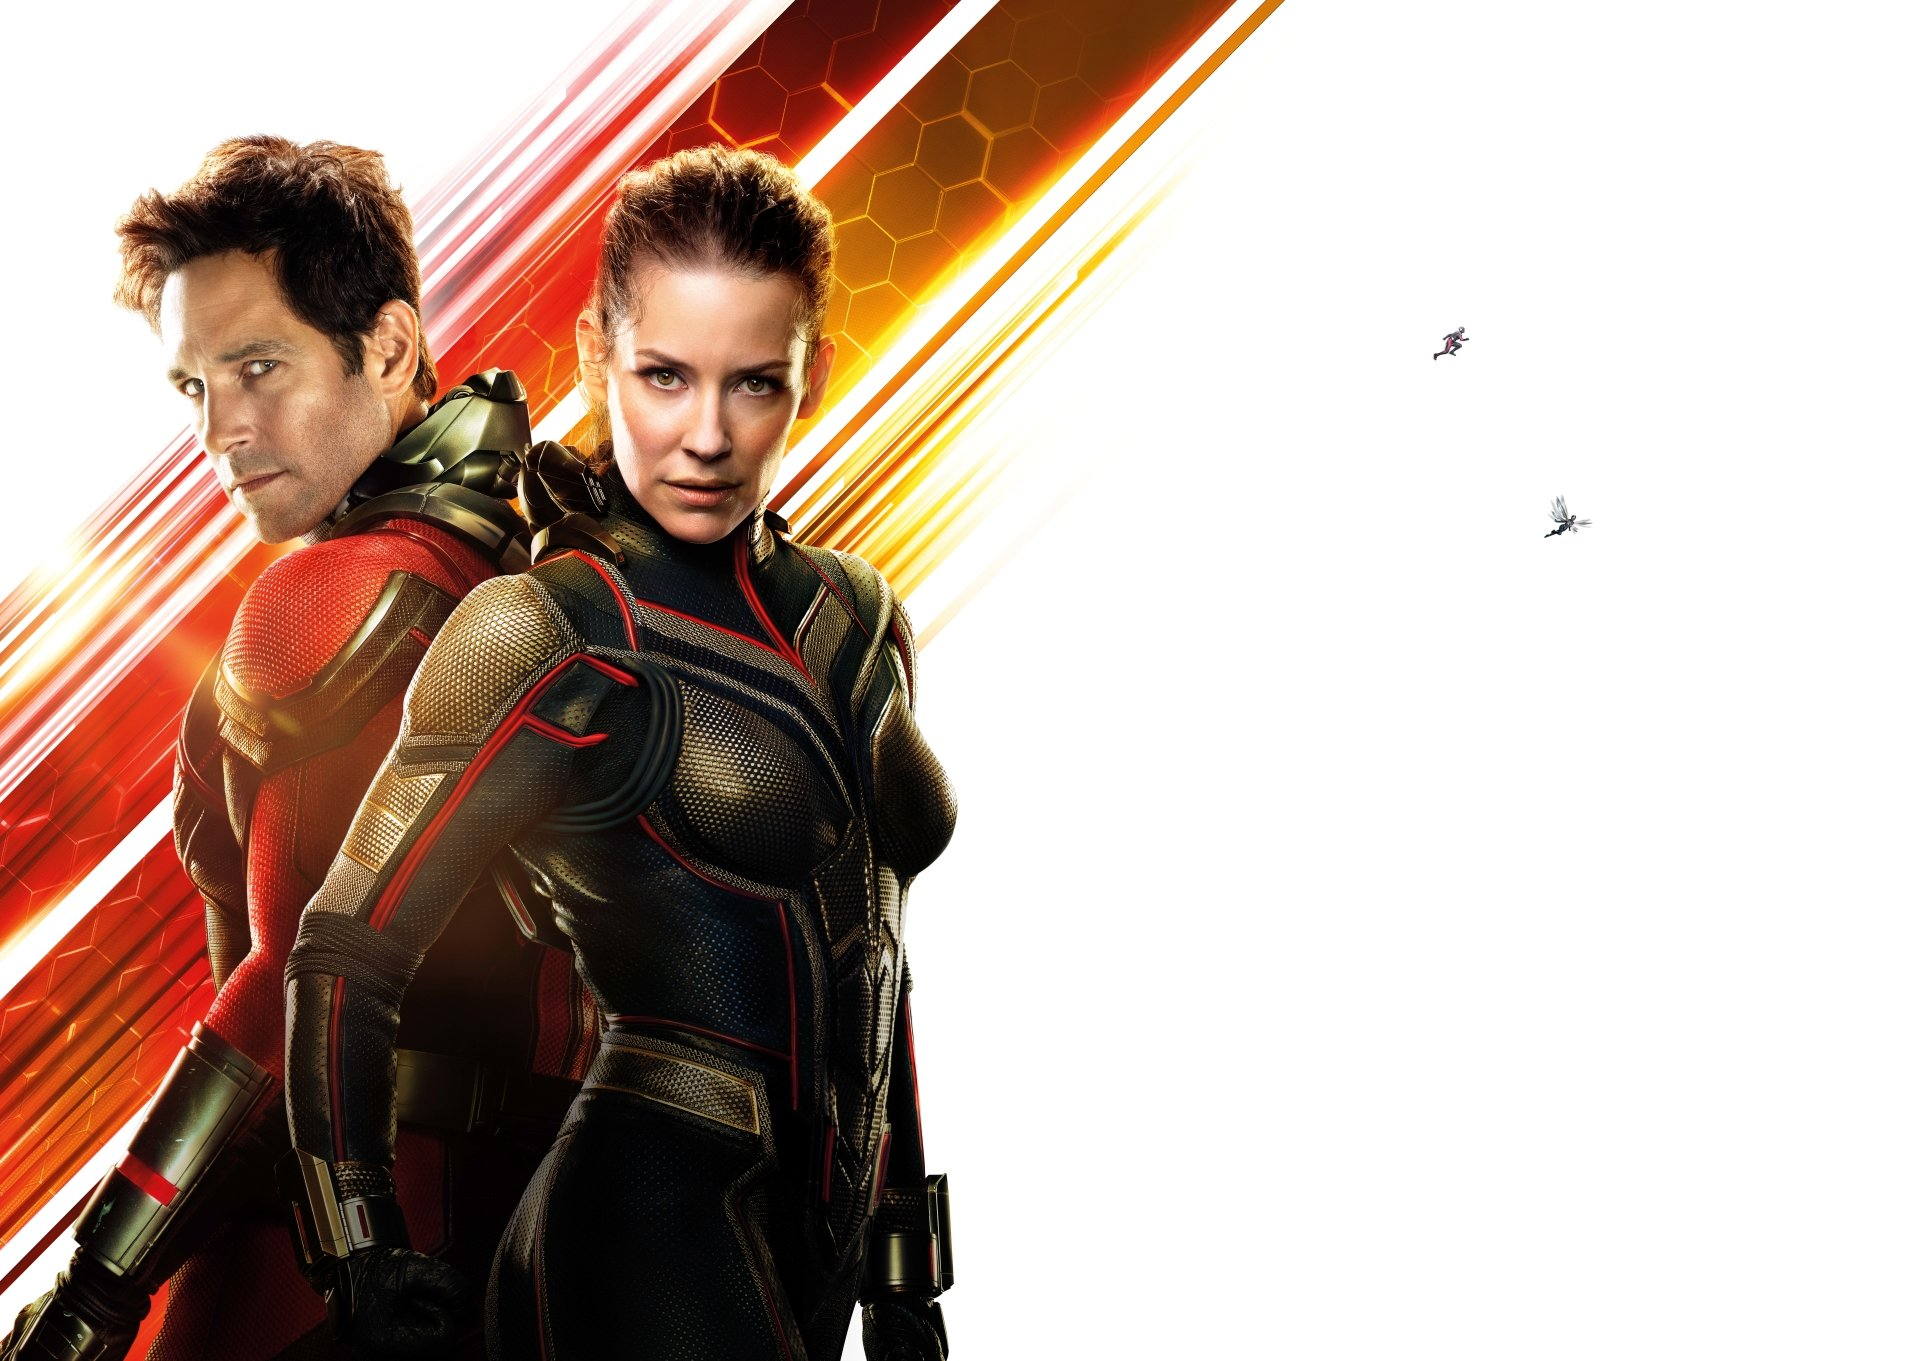 Ant Man And The Wasp Wallpaper: Ant-Man And The Wasp 8k Ultra HD Wallpaper